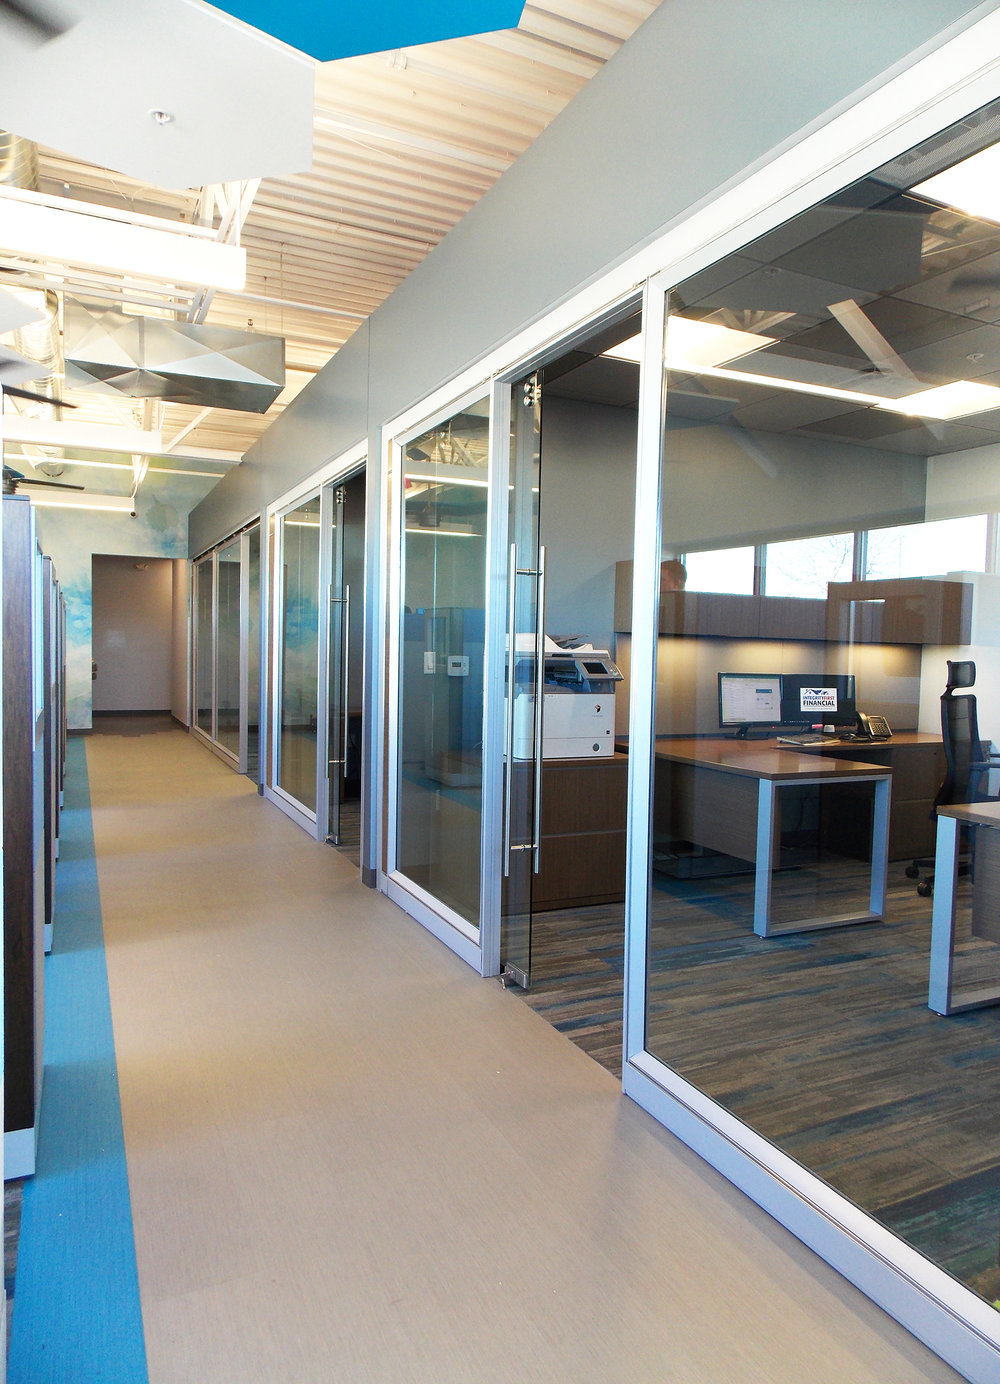 The main walkway separating the private offices from open offices area is  Patcraft's Metallix  luxury vinyl tile. Throughout the office, it changes between a mix of greys but is accented by a bright blue stripe. The  Milliken  carpet tiles are primarily grey and accented by blue, but vary in saturation whether you are in the open office or conference room.